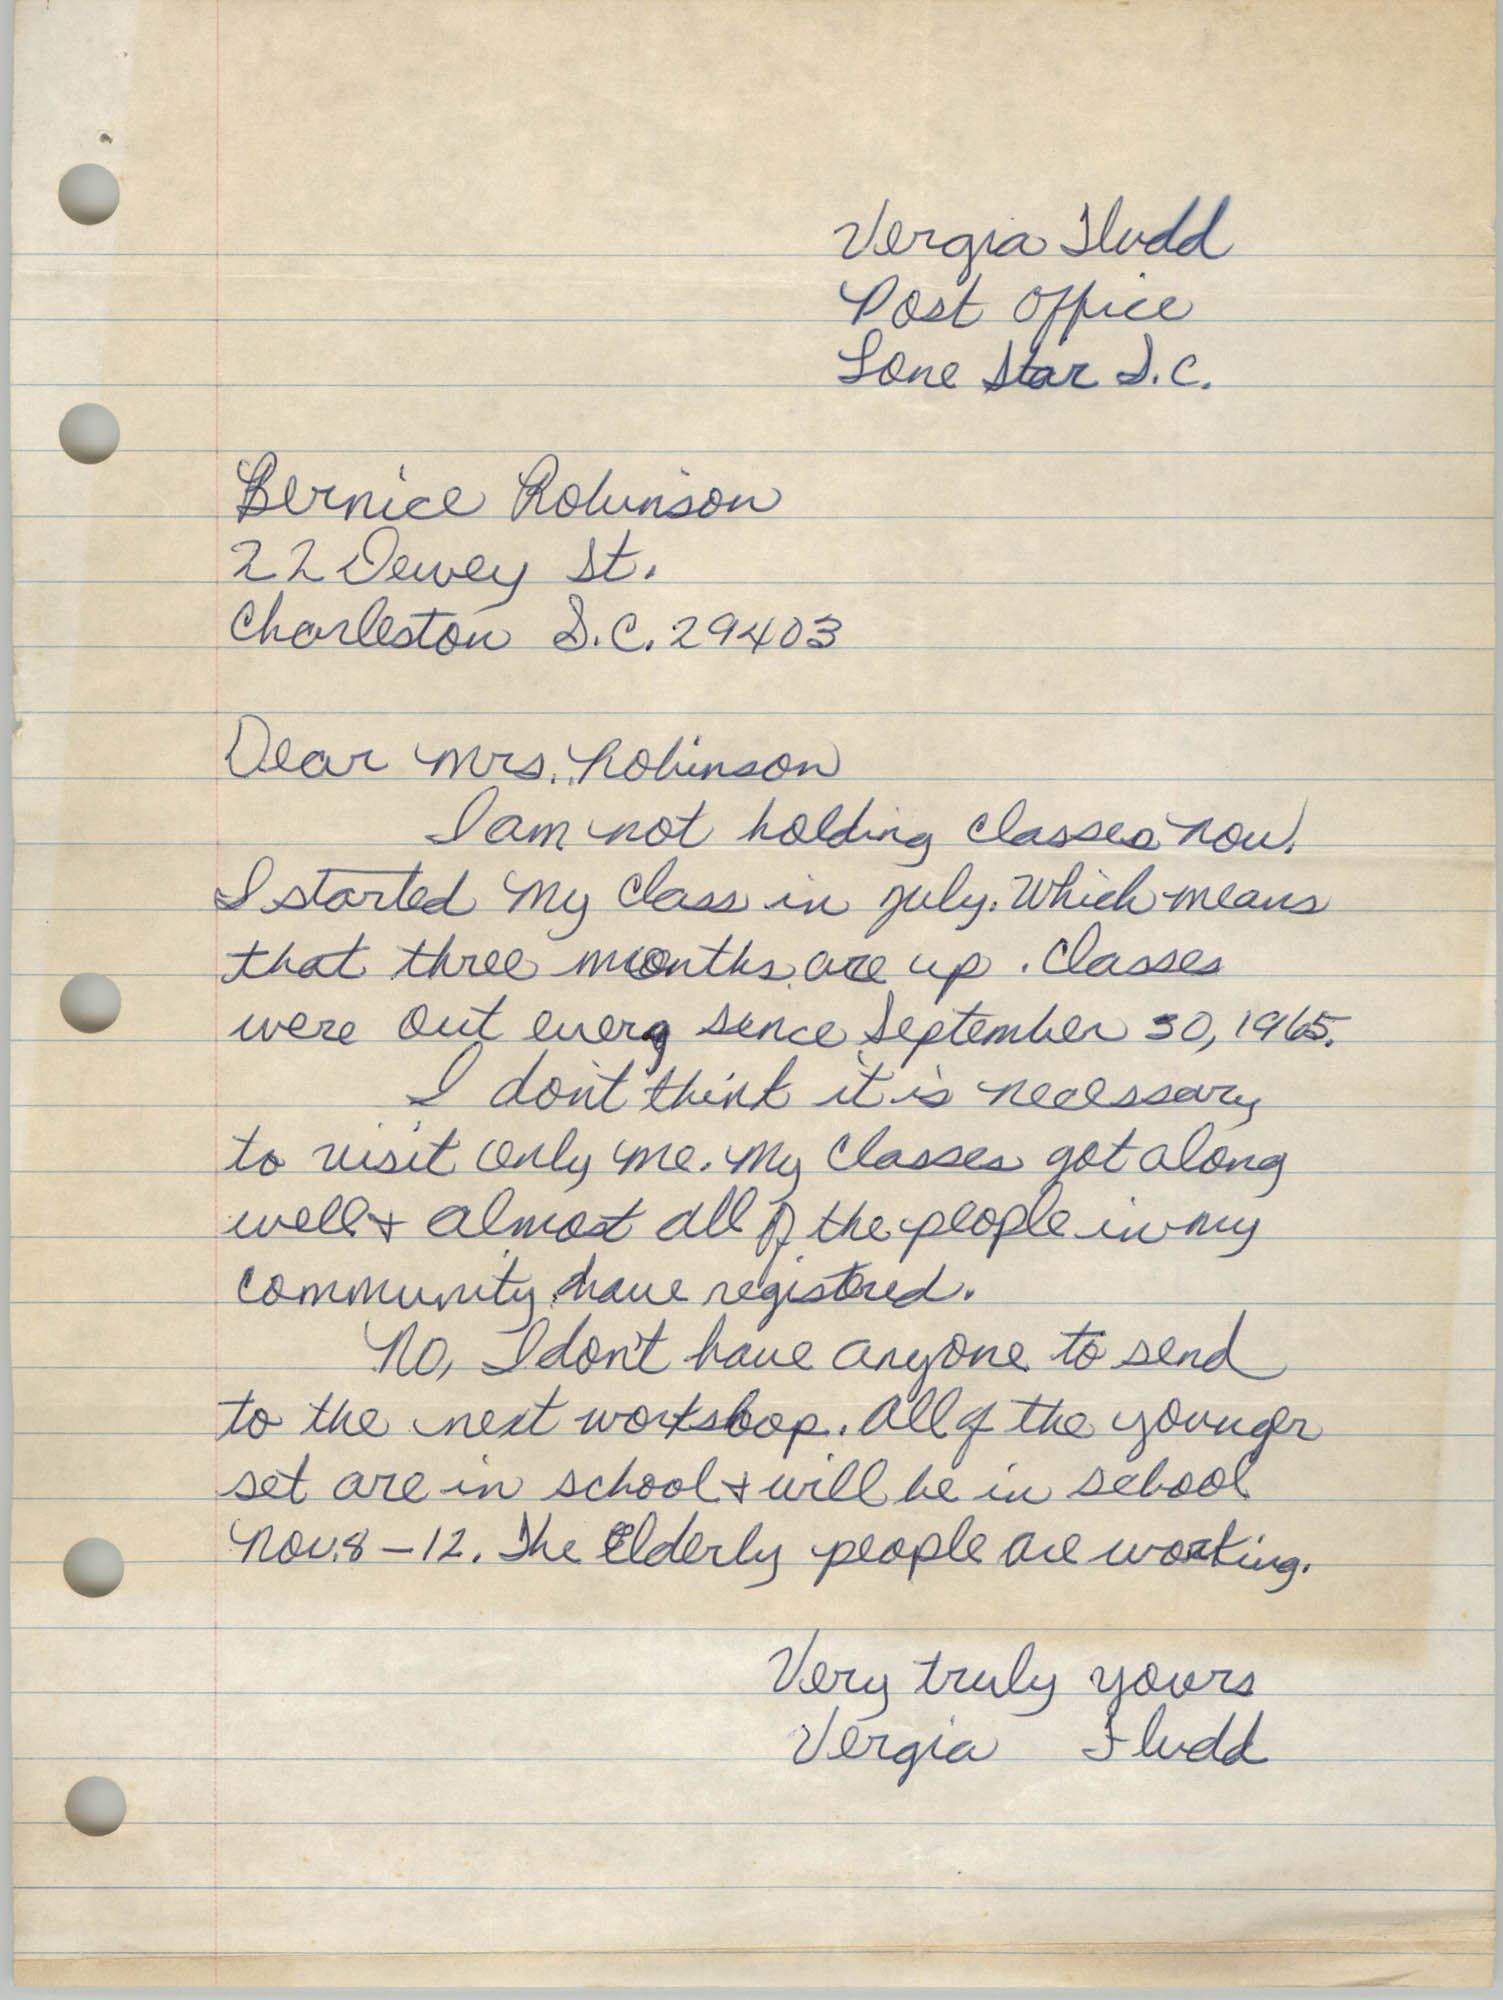 Letter from Vergia Fludd to Bernice Robinson